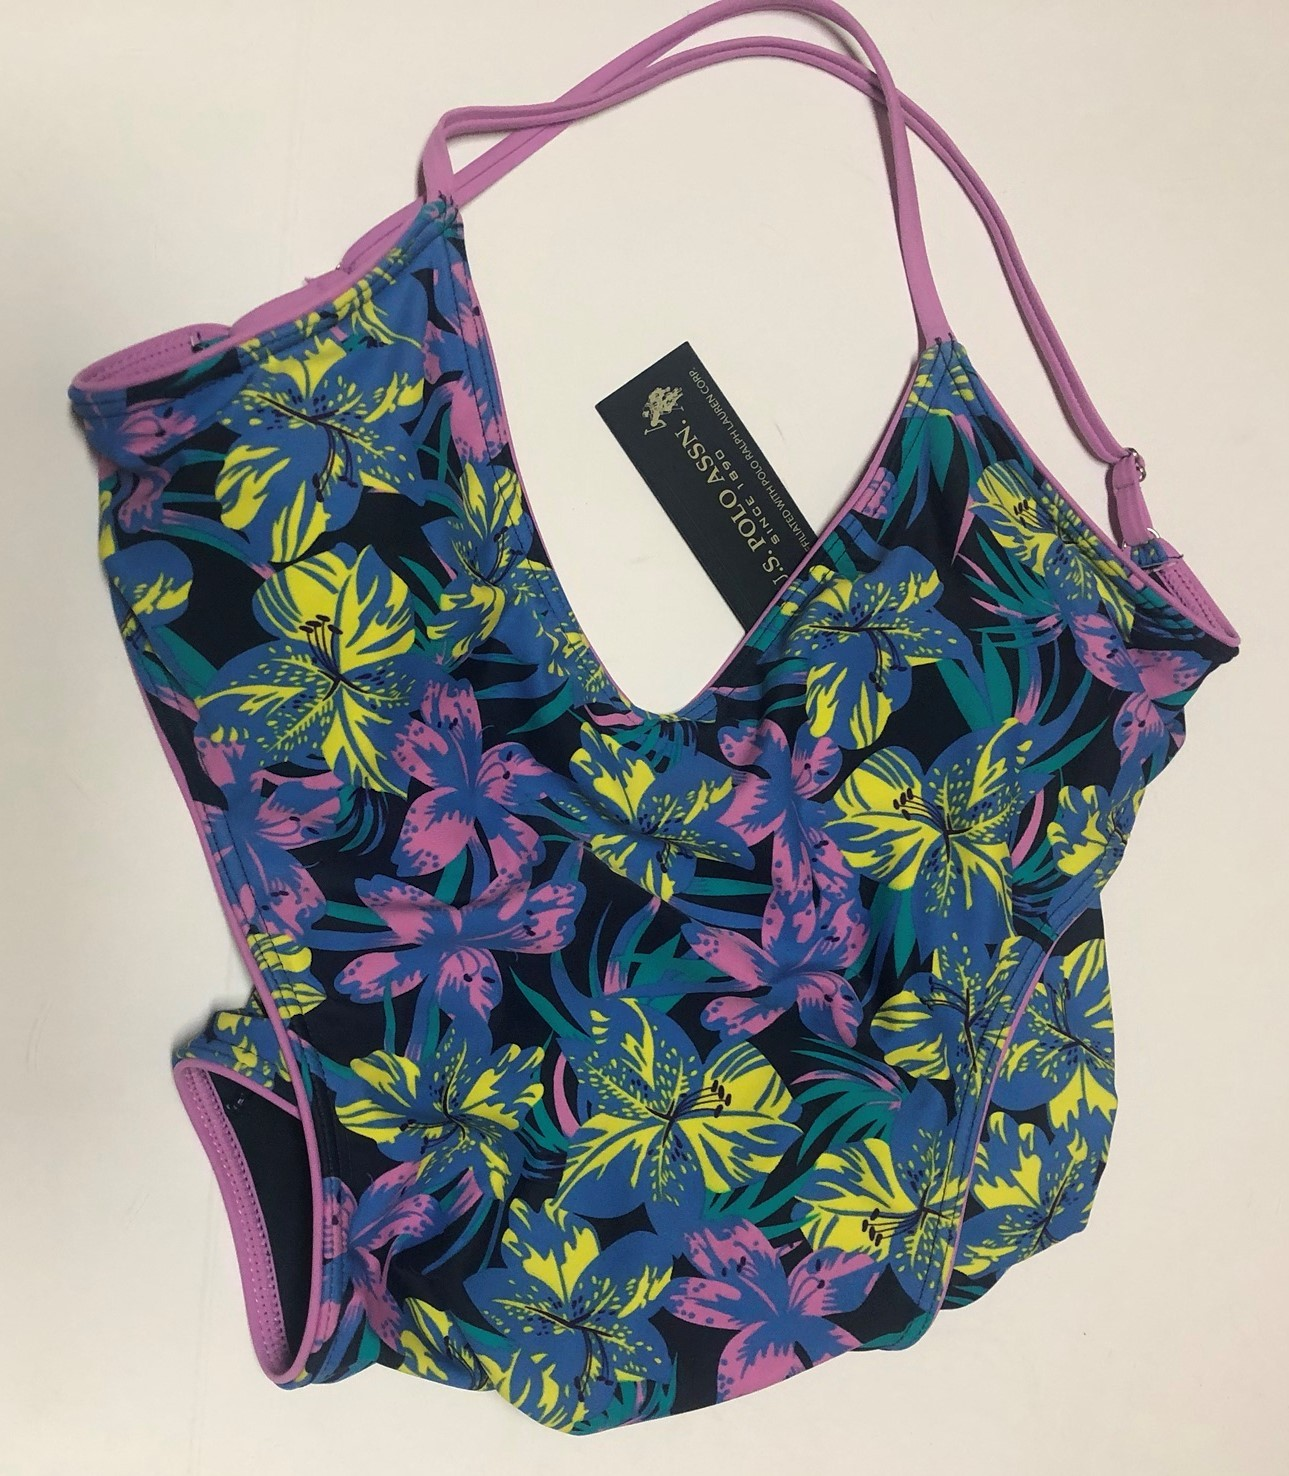 U.S. Polo One Piece Swimsuit Floral Open Back Sz M image 5